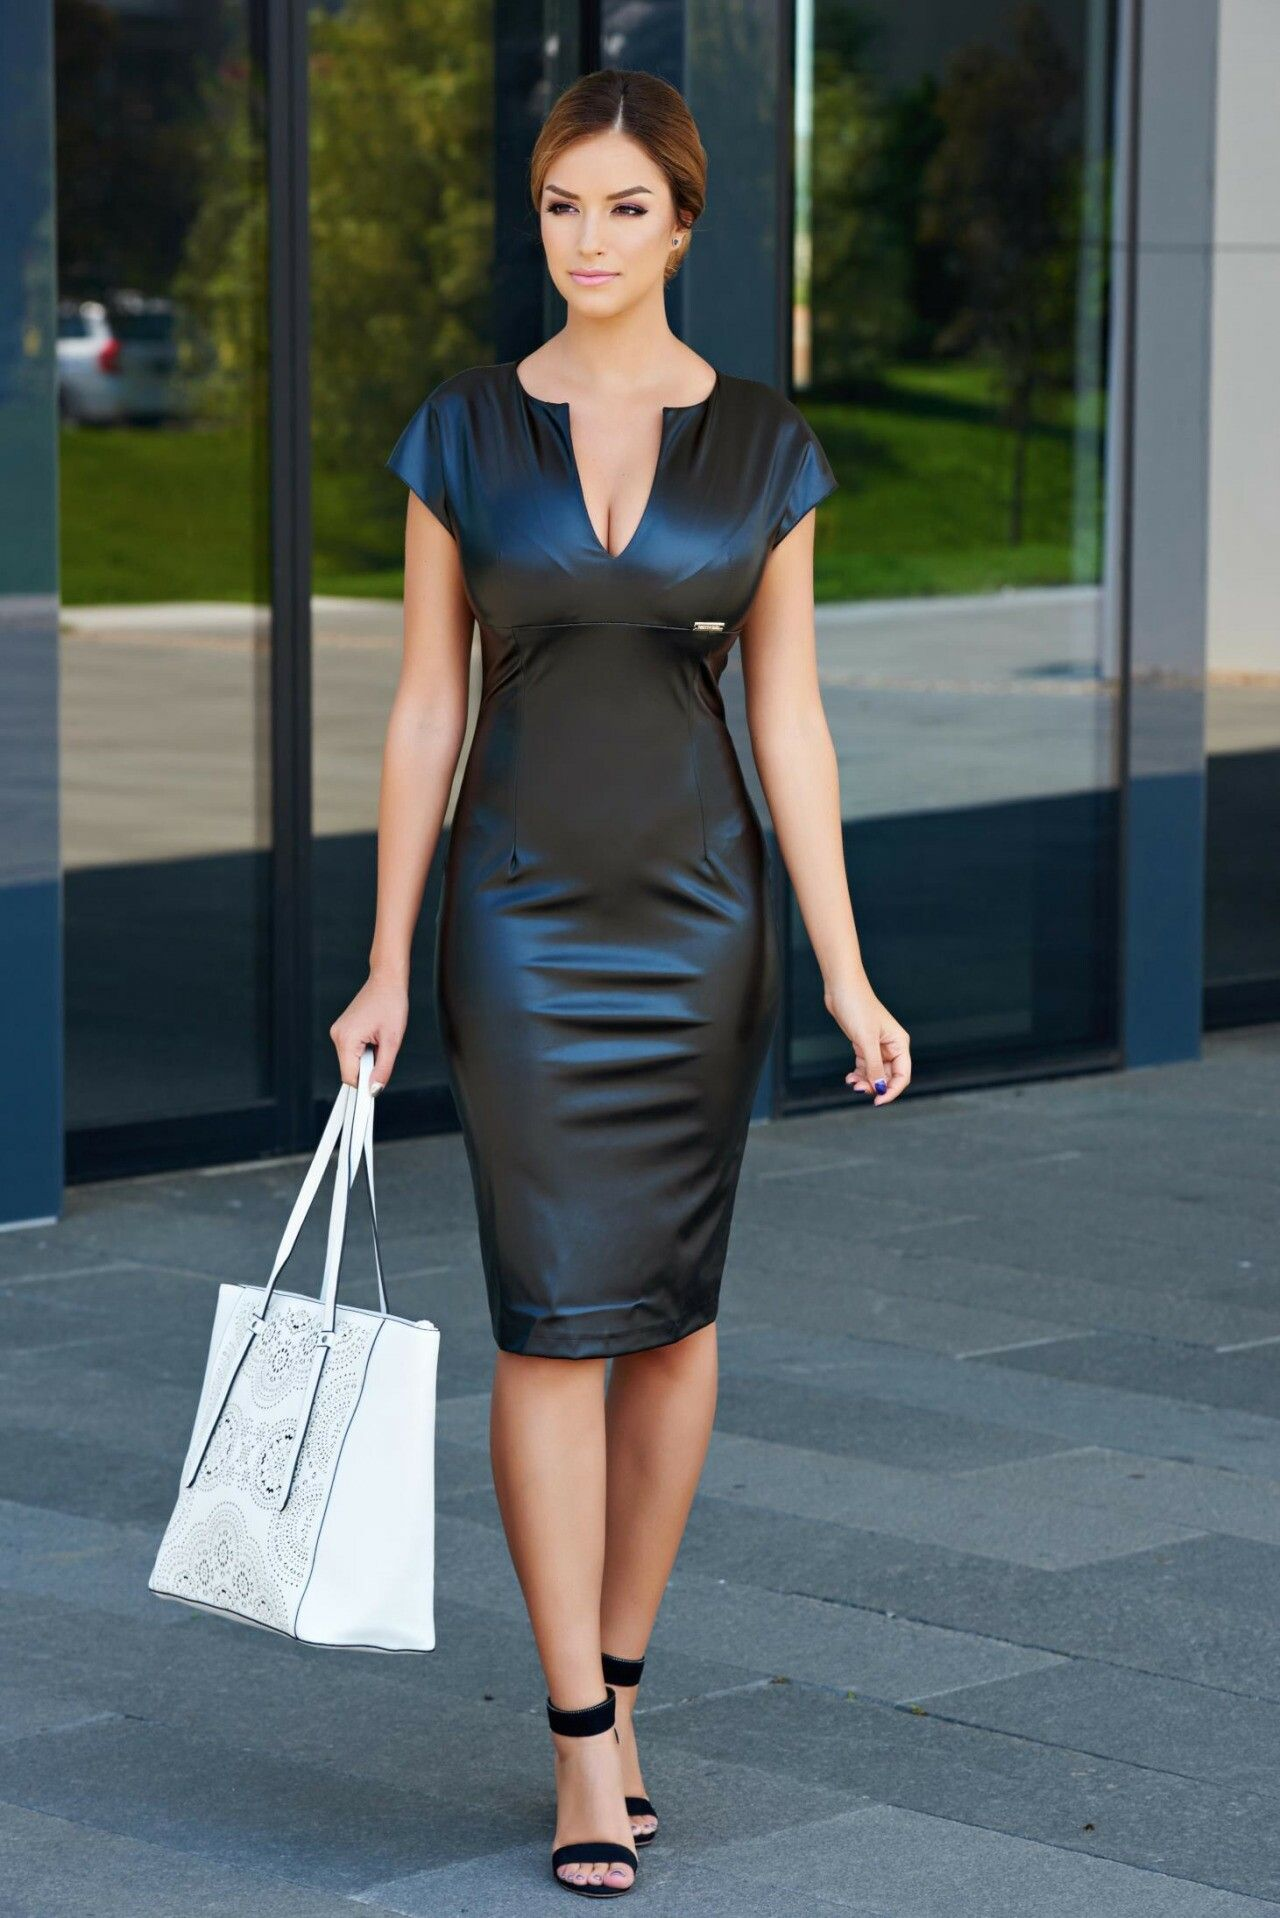 Sexy Leather Dresses -12 Stylish ways to Wear Leather Dress pics